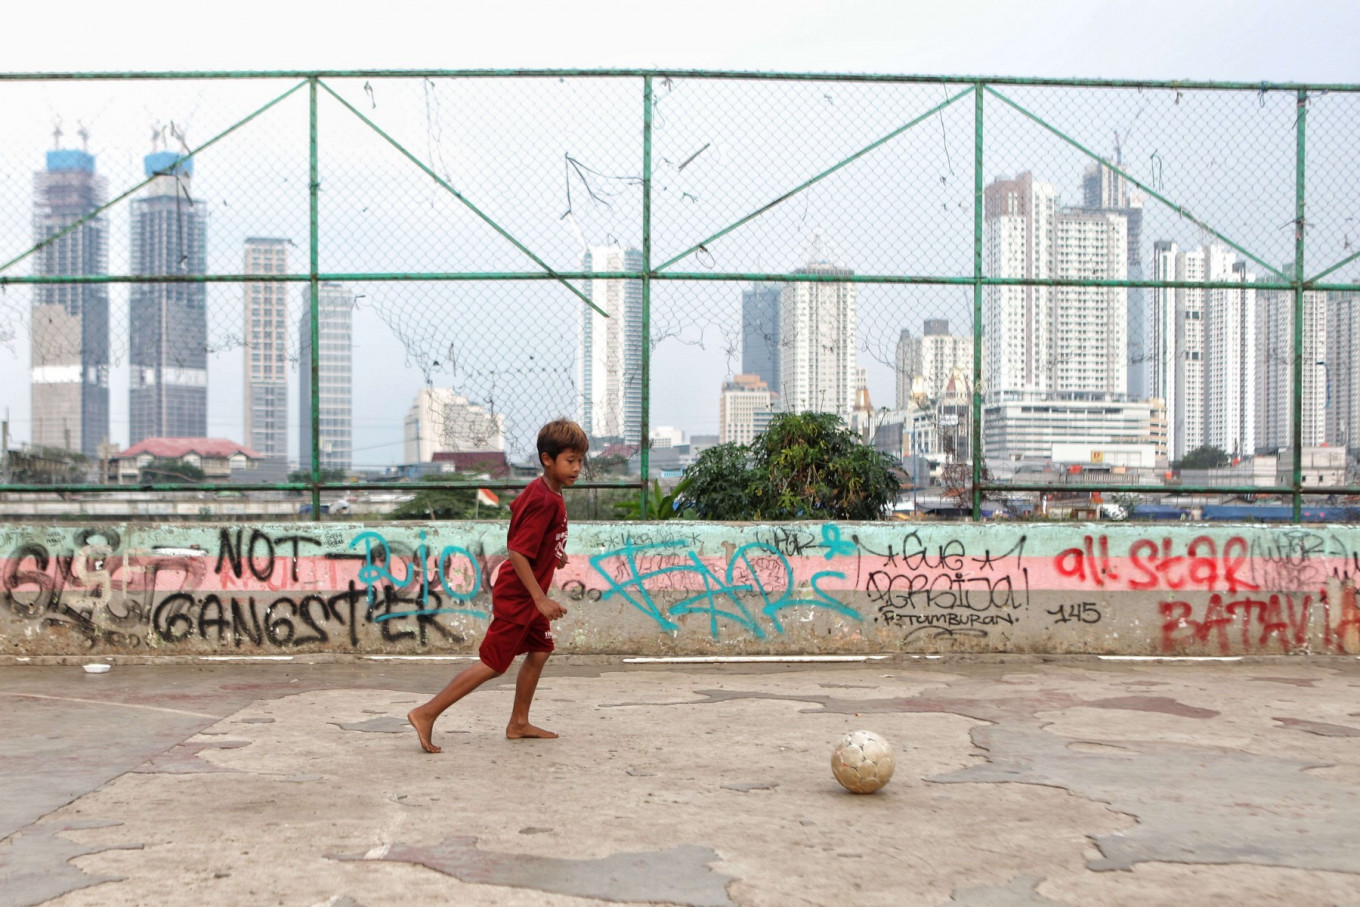 A boy plays soccer at a playground near the West Flood Canal in Jakarta on July 21. London-based NGO Save the Children states that around 9.7 million children around the world have potentially been affected by school closures and are at risk of permanently dropping out of school because of the COVID-19 pandemic. JP/Seto Wardhana